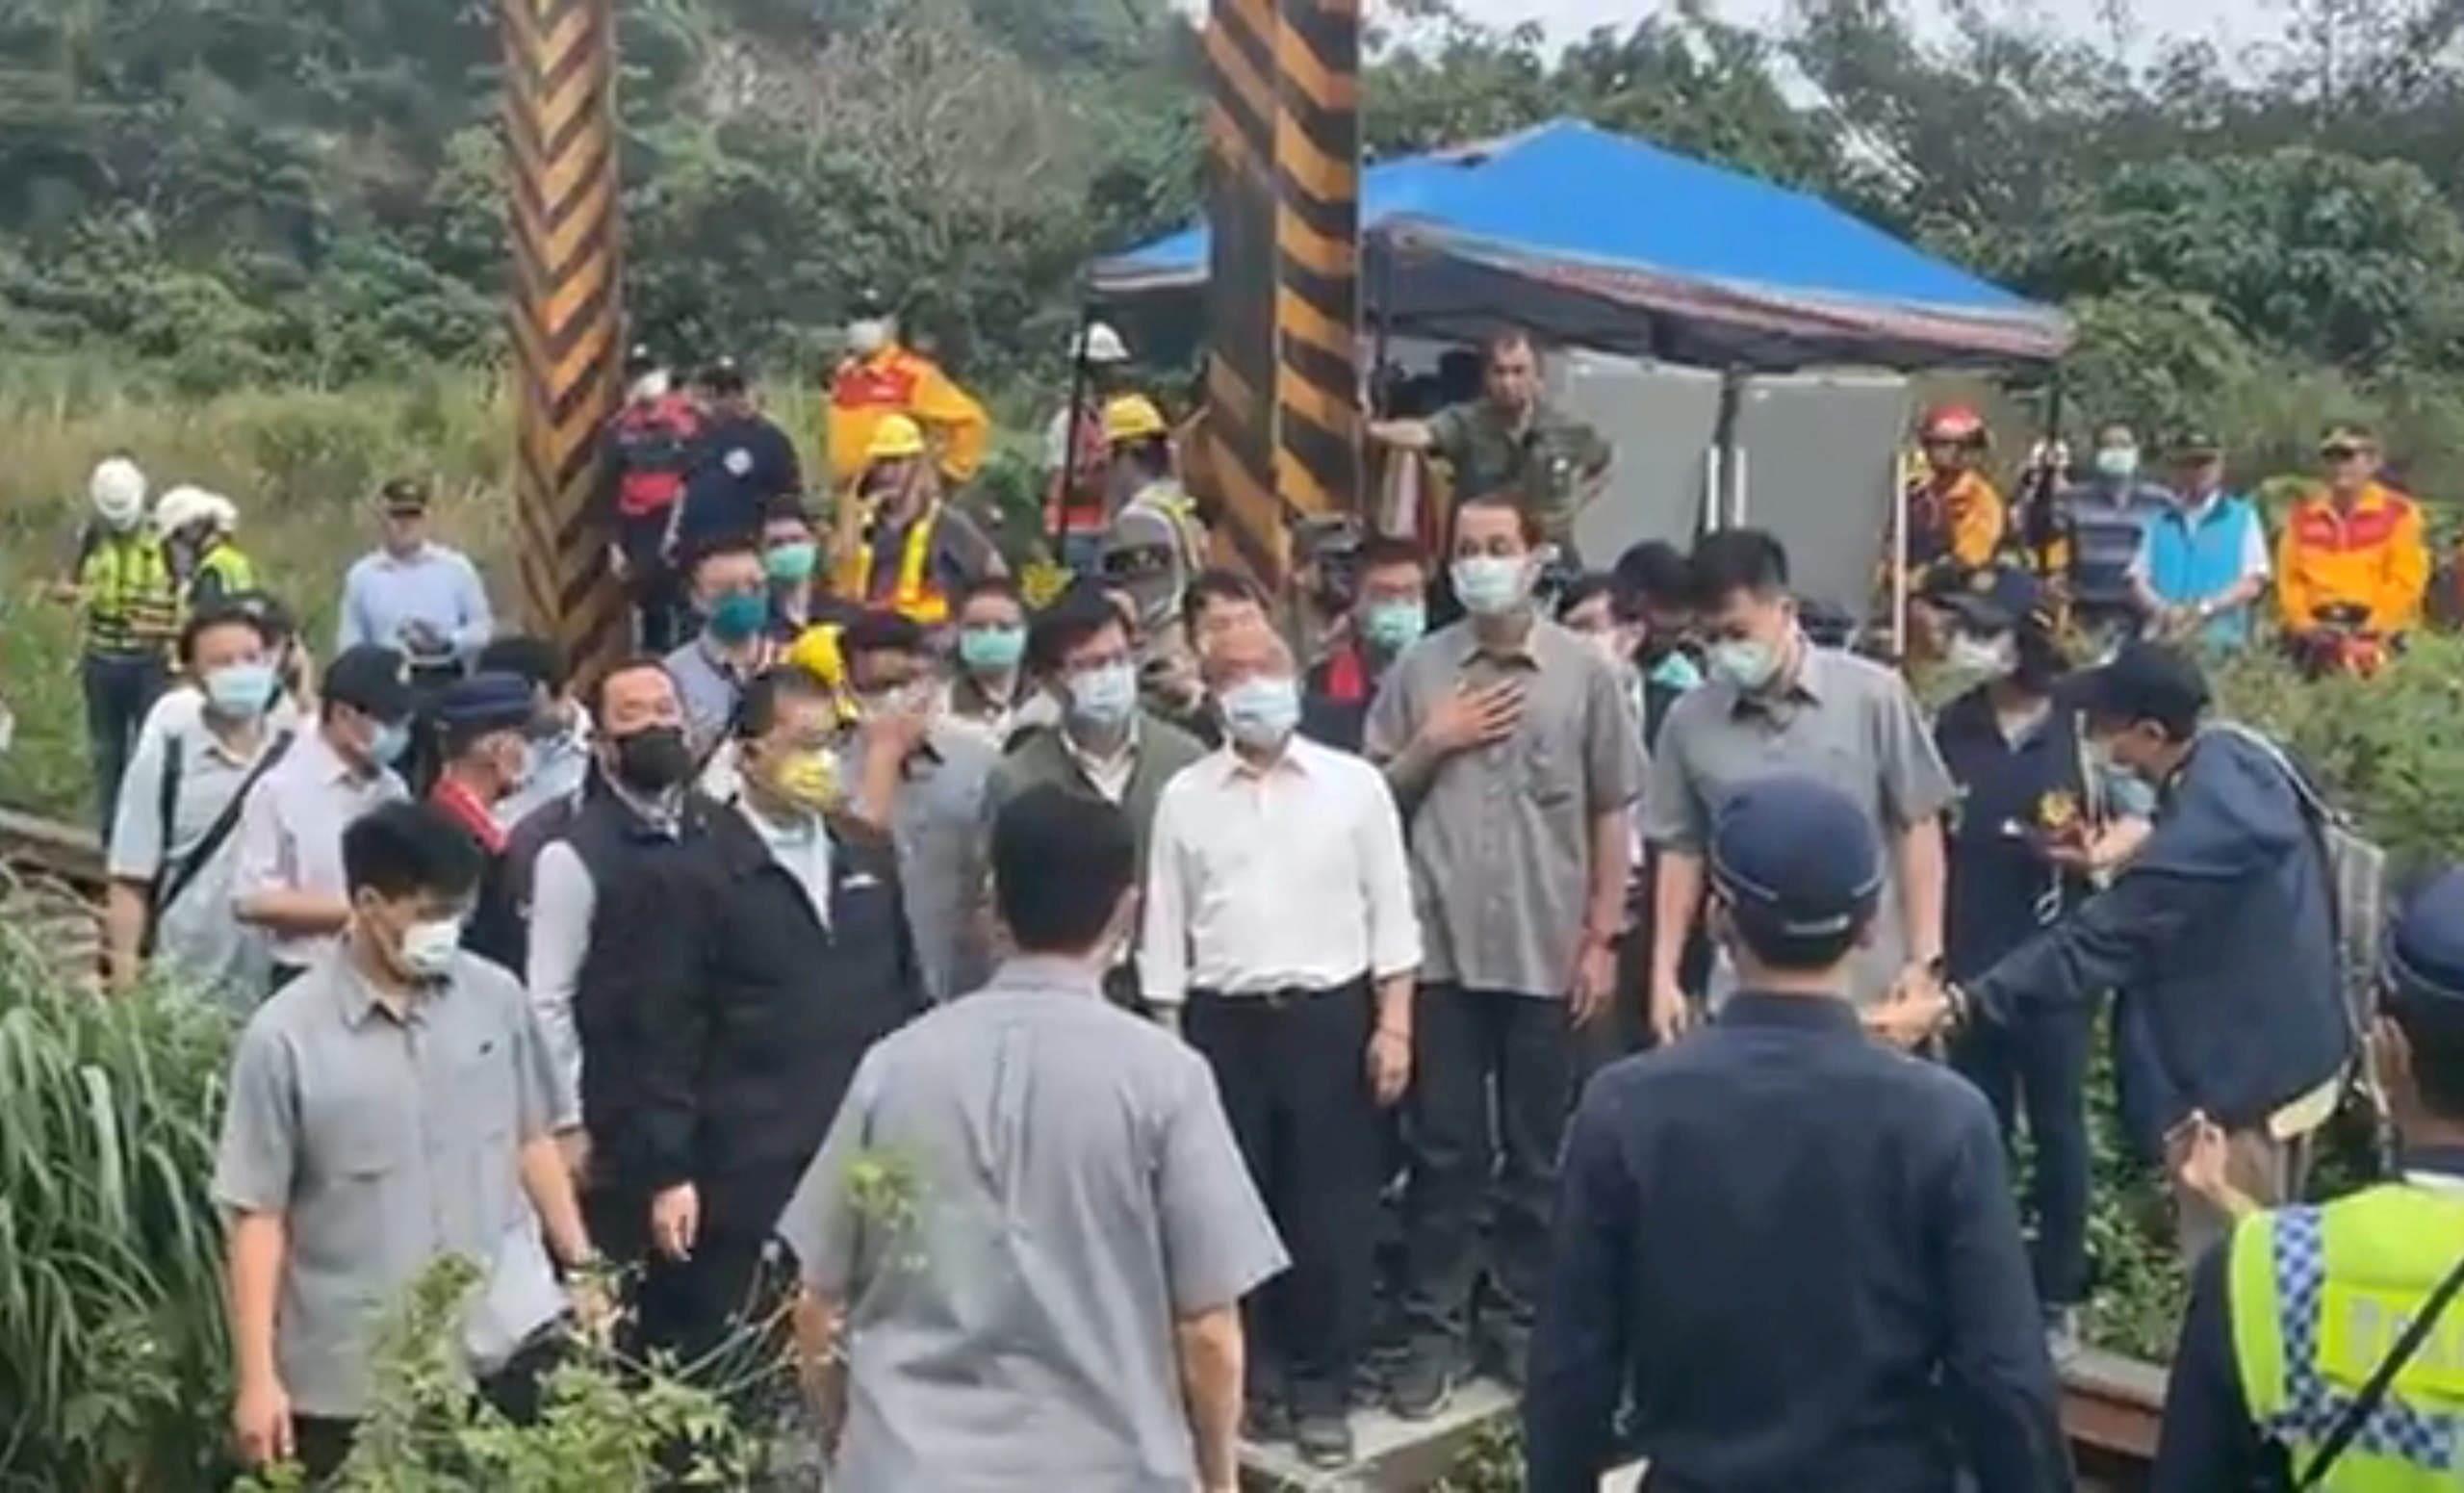 Taiwan's Premier Su Tseng-chang visits the site of a train crash north of Hualien, Taiwan April 2, 2021, in this still image taken from video. (Reuters)